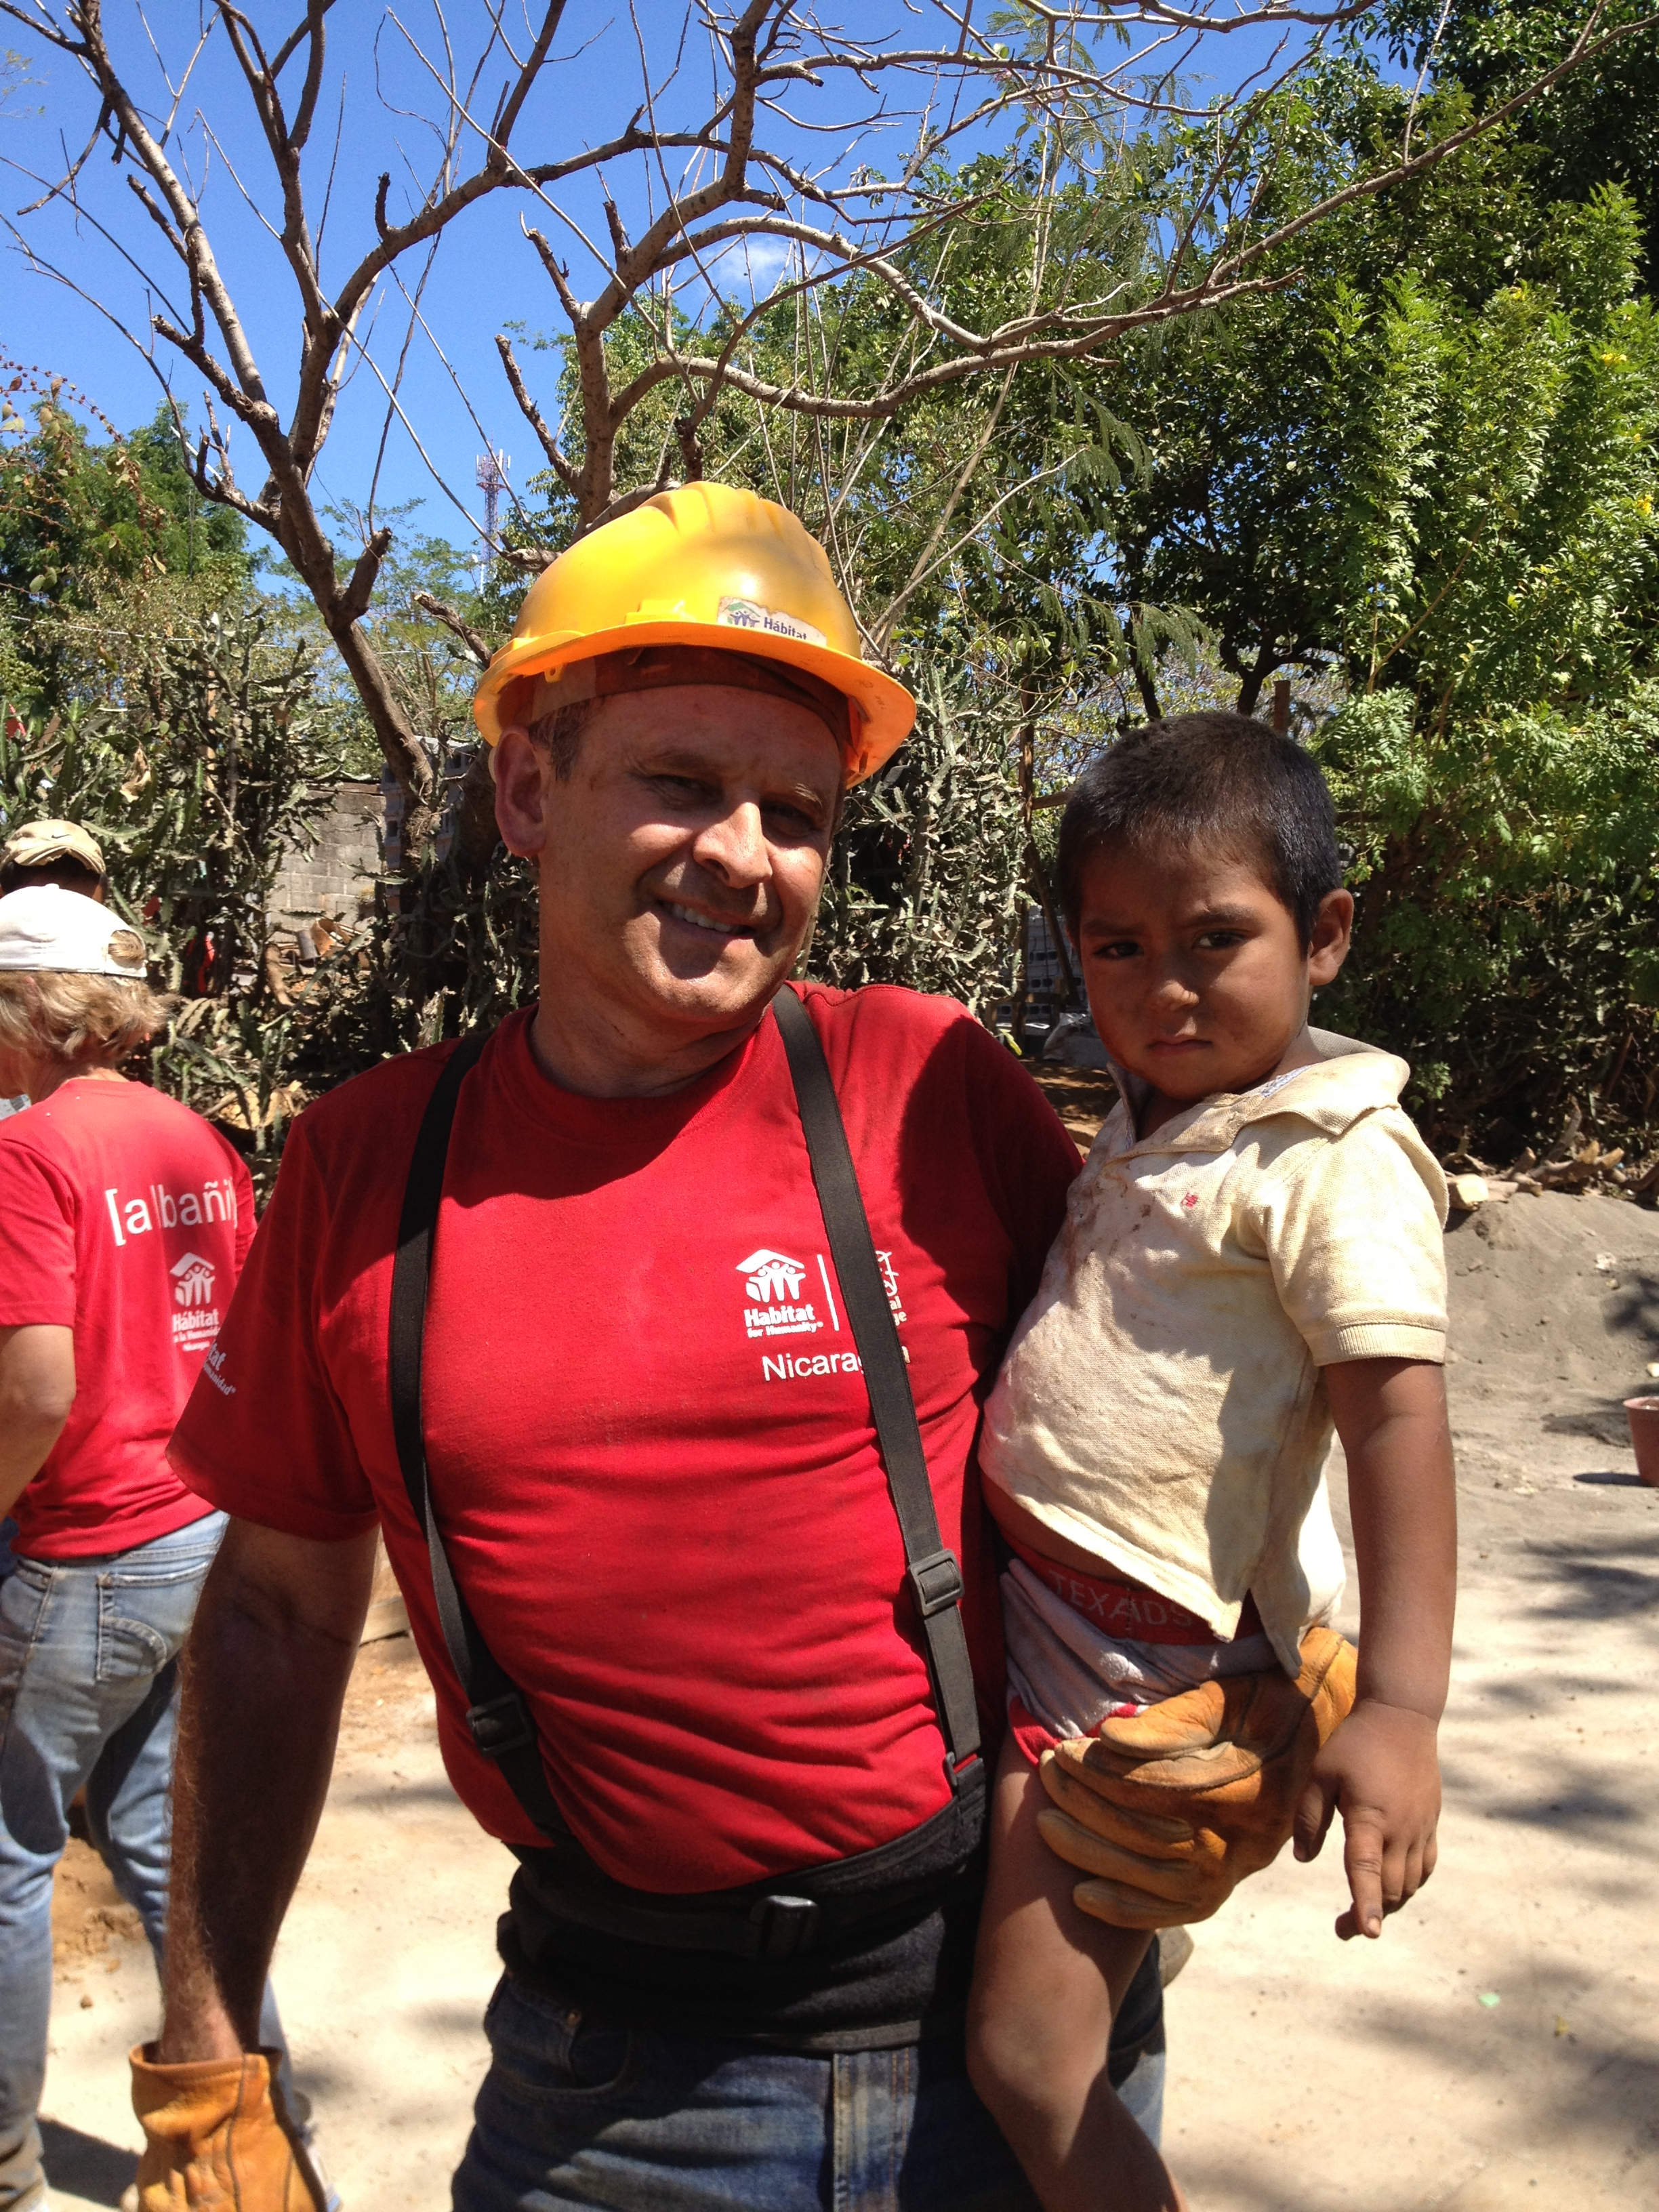 A man standing and smiling with a hard hat on while holding a toddler for a photo.